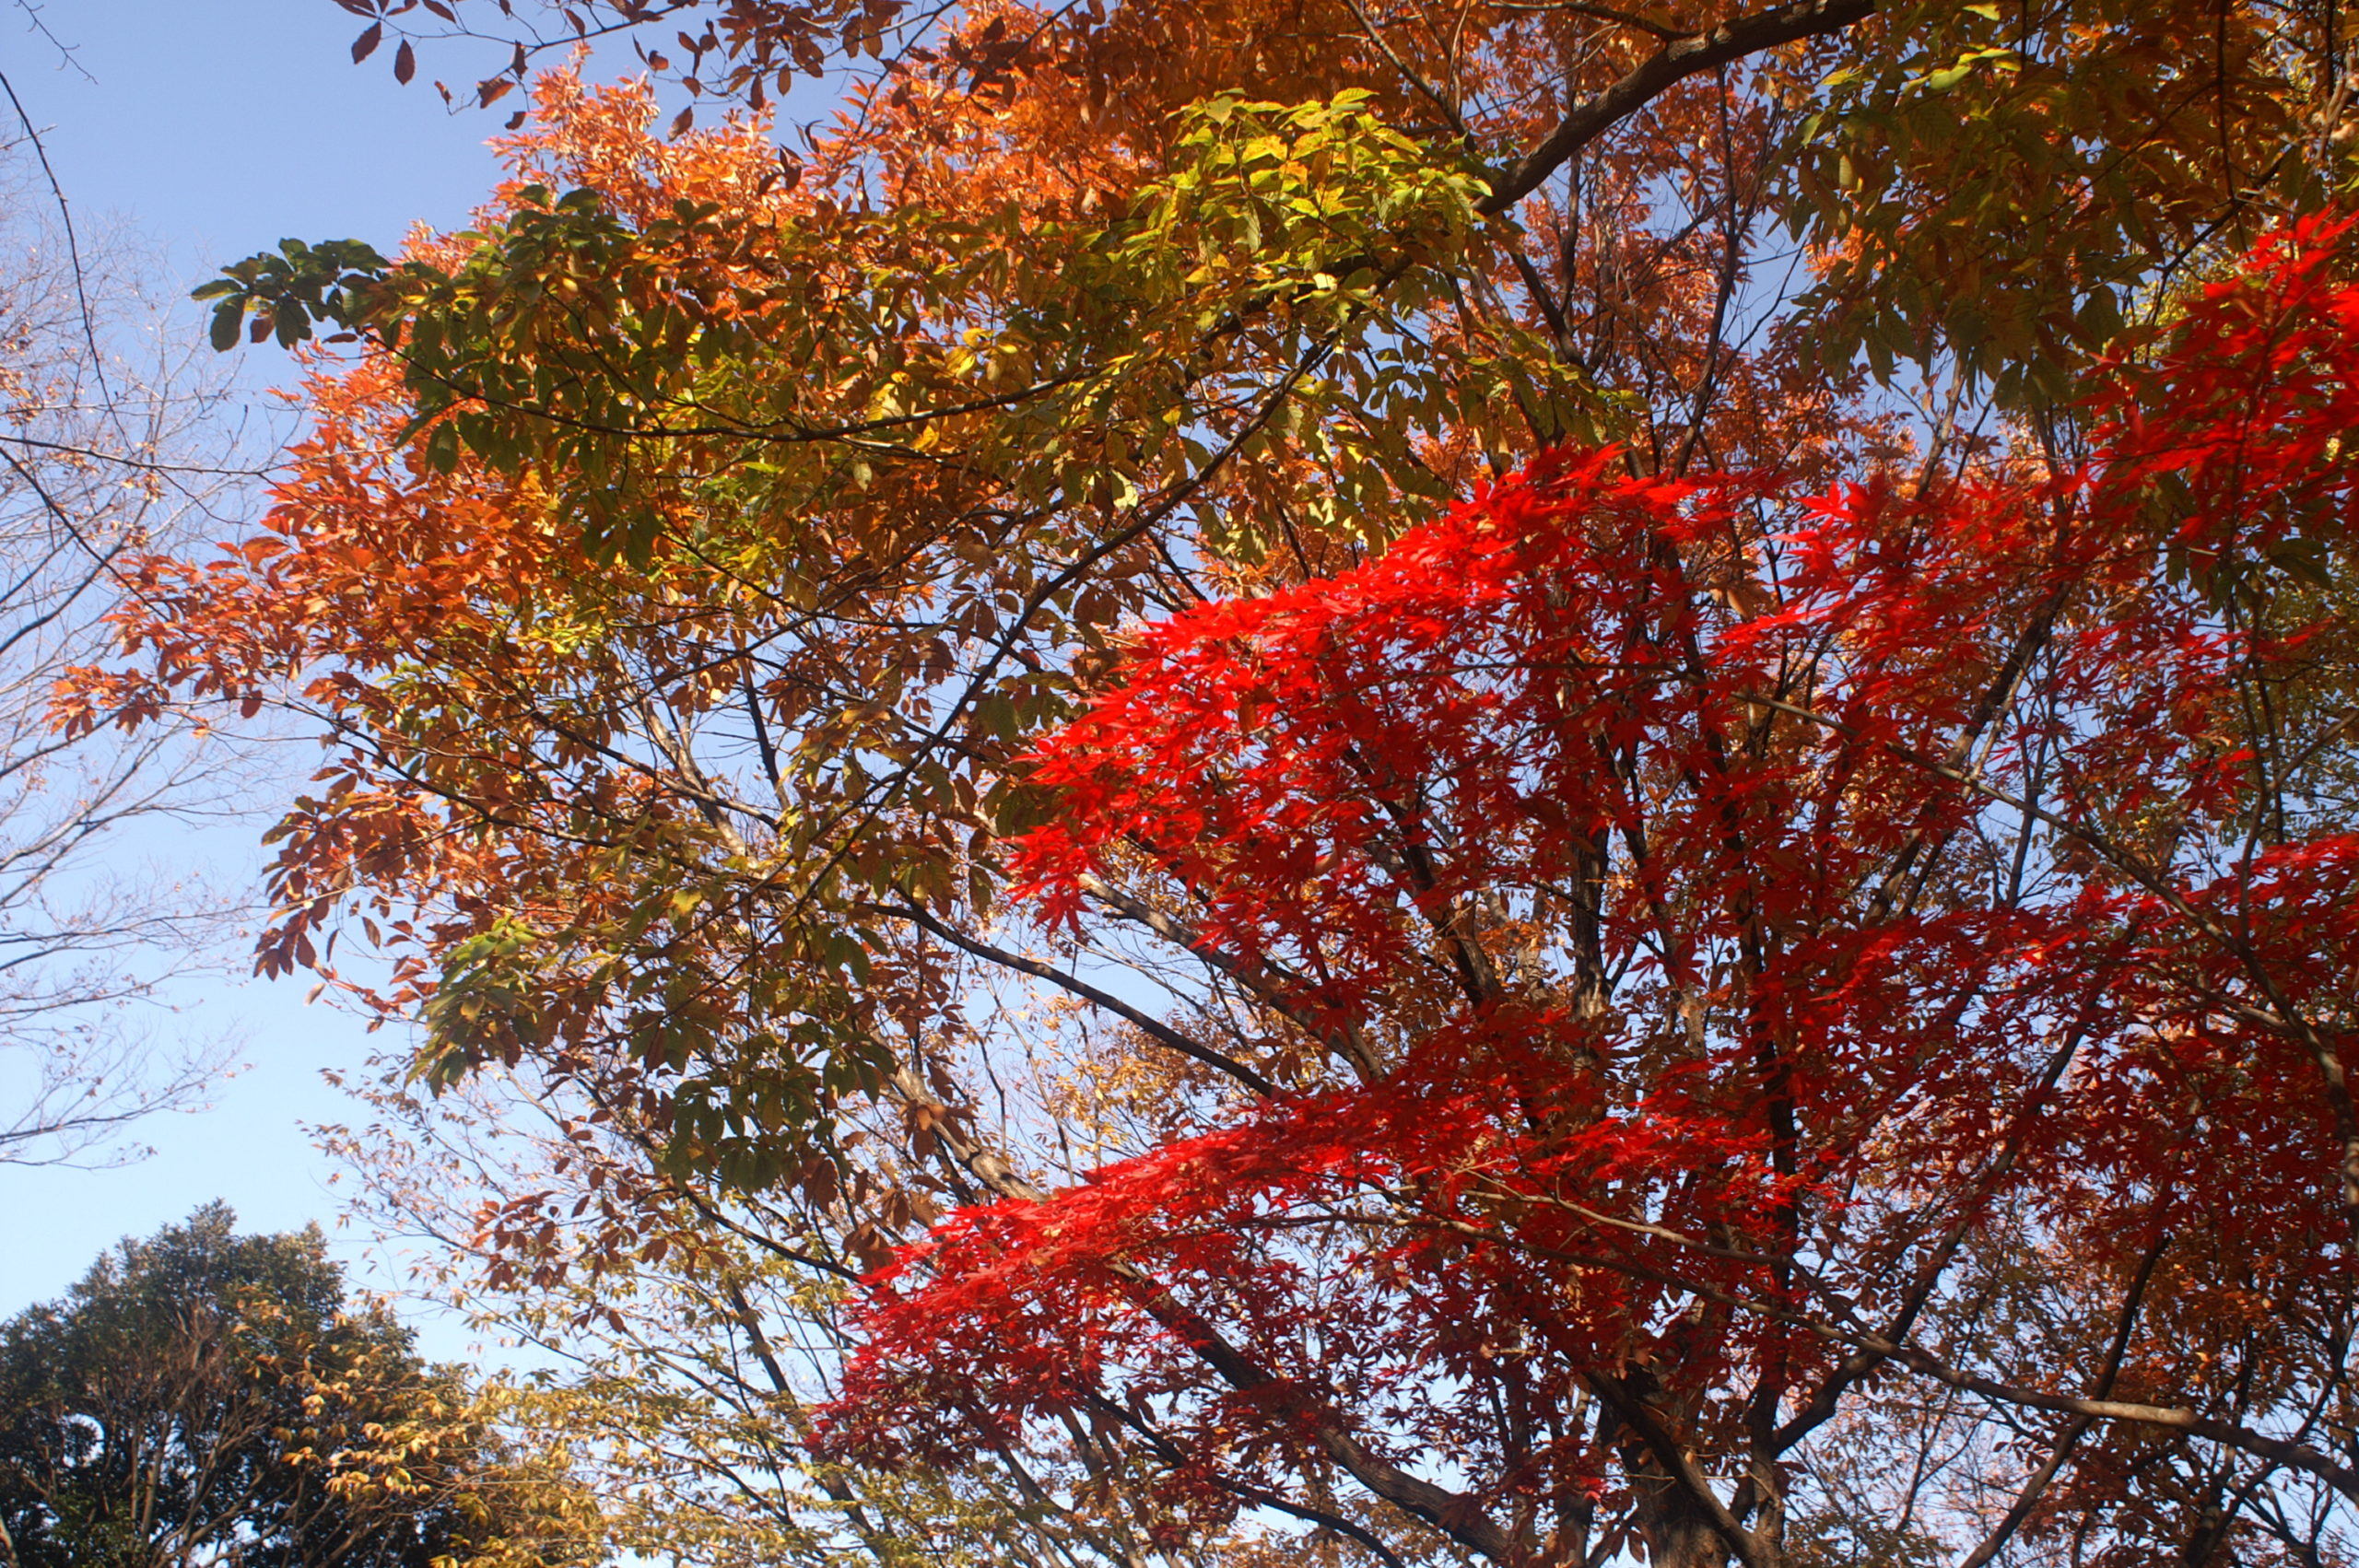 Image showing autumn fall colours in the Heiwa no Mori Park